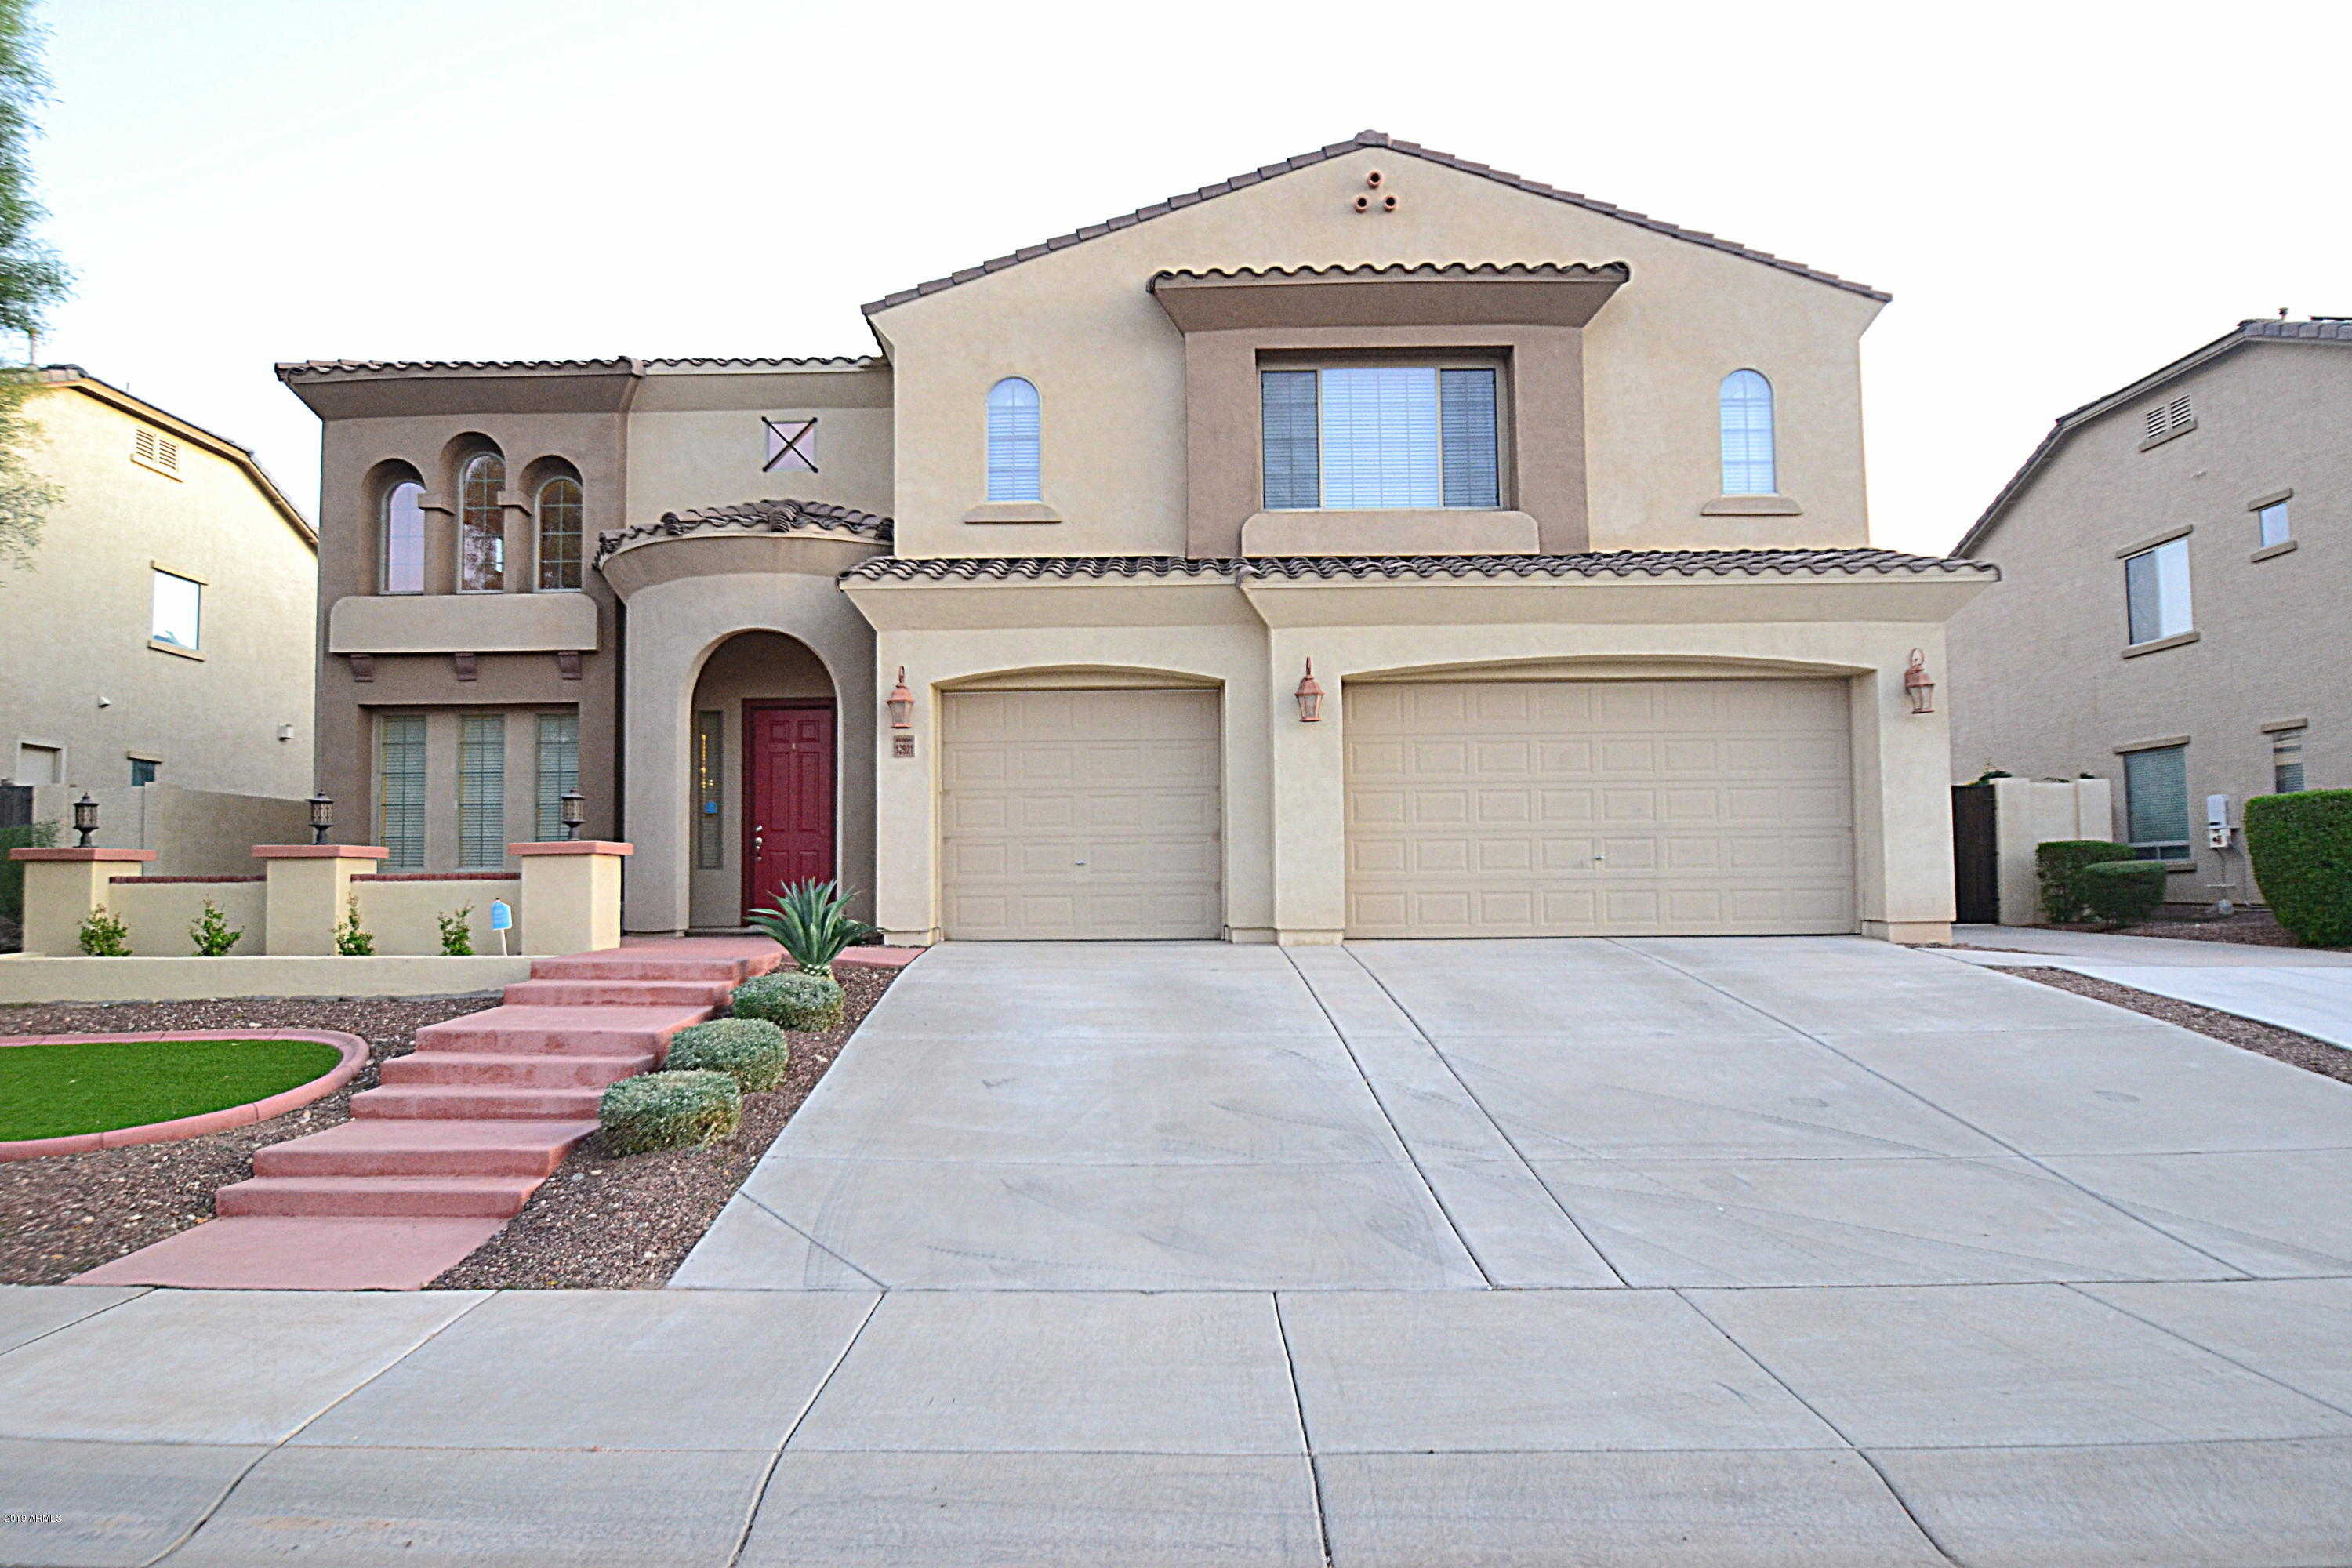 $398,000 - 5Br/3Ba - Home for Sale in Capistrano South, Glendale